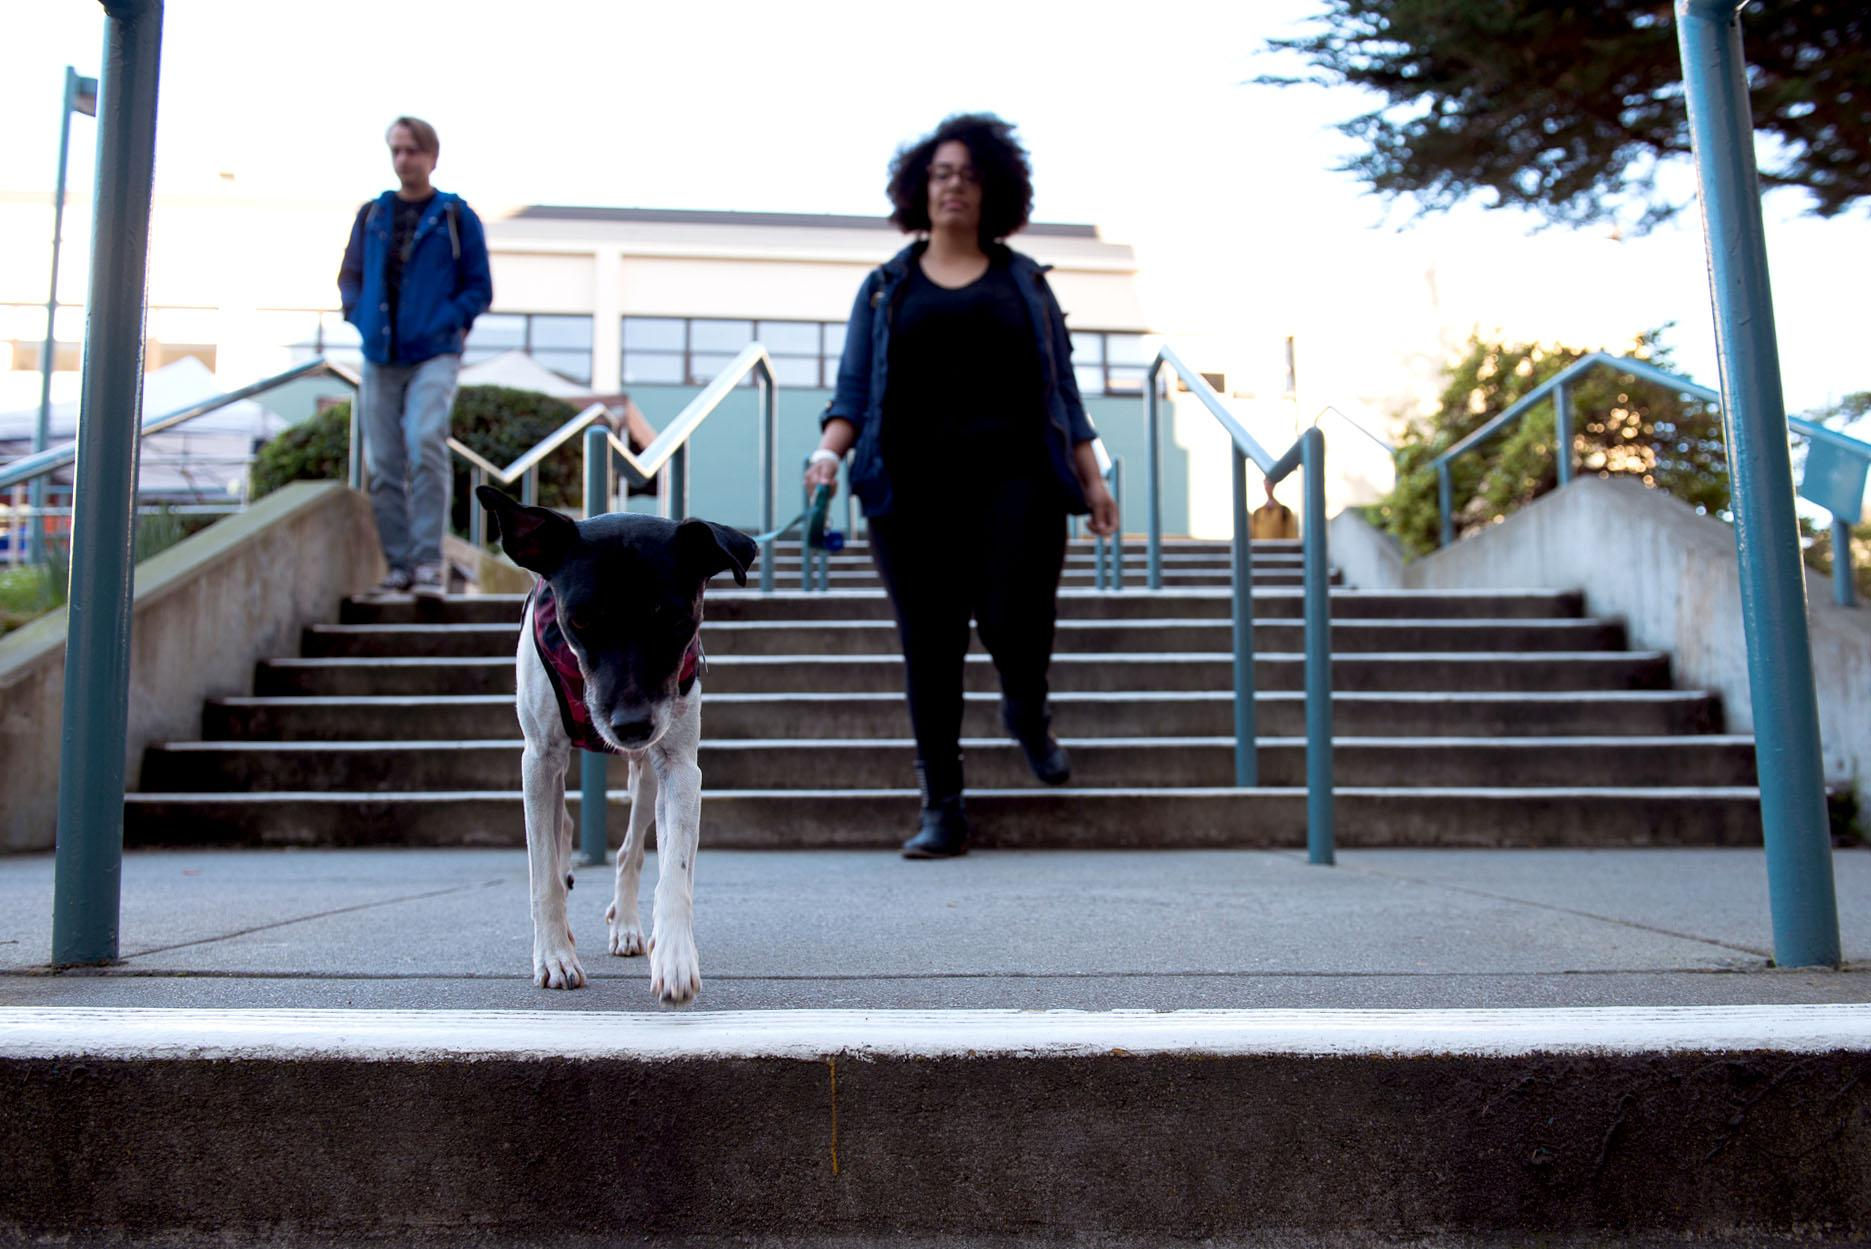 Communications major Mia Anderson and her dog Xena head down the stairs to the Humanities building at SF State on Thursday, Feb. 15. (David Rodriguez/Golden Gate Xpress)